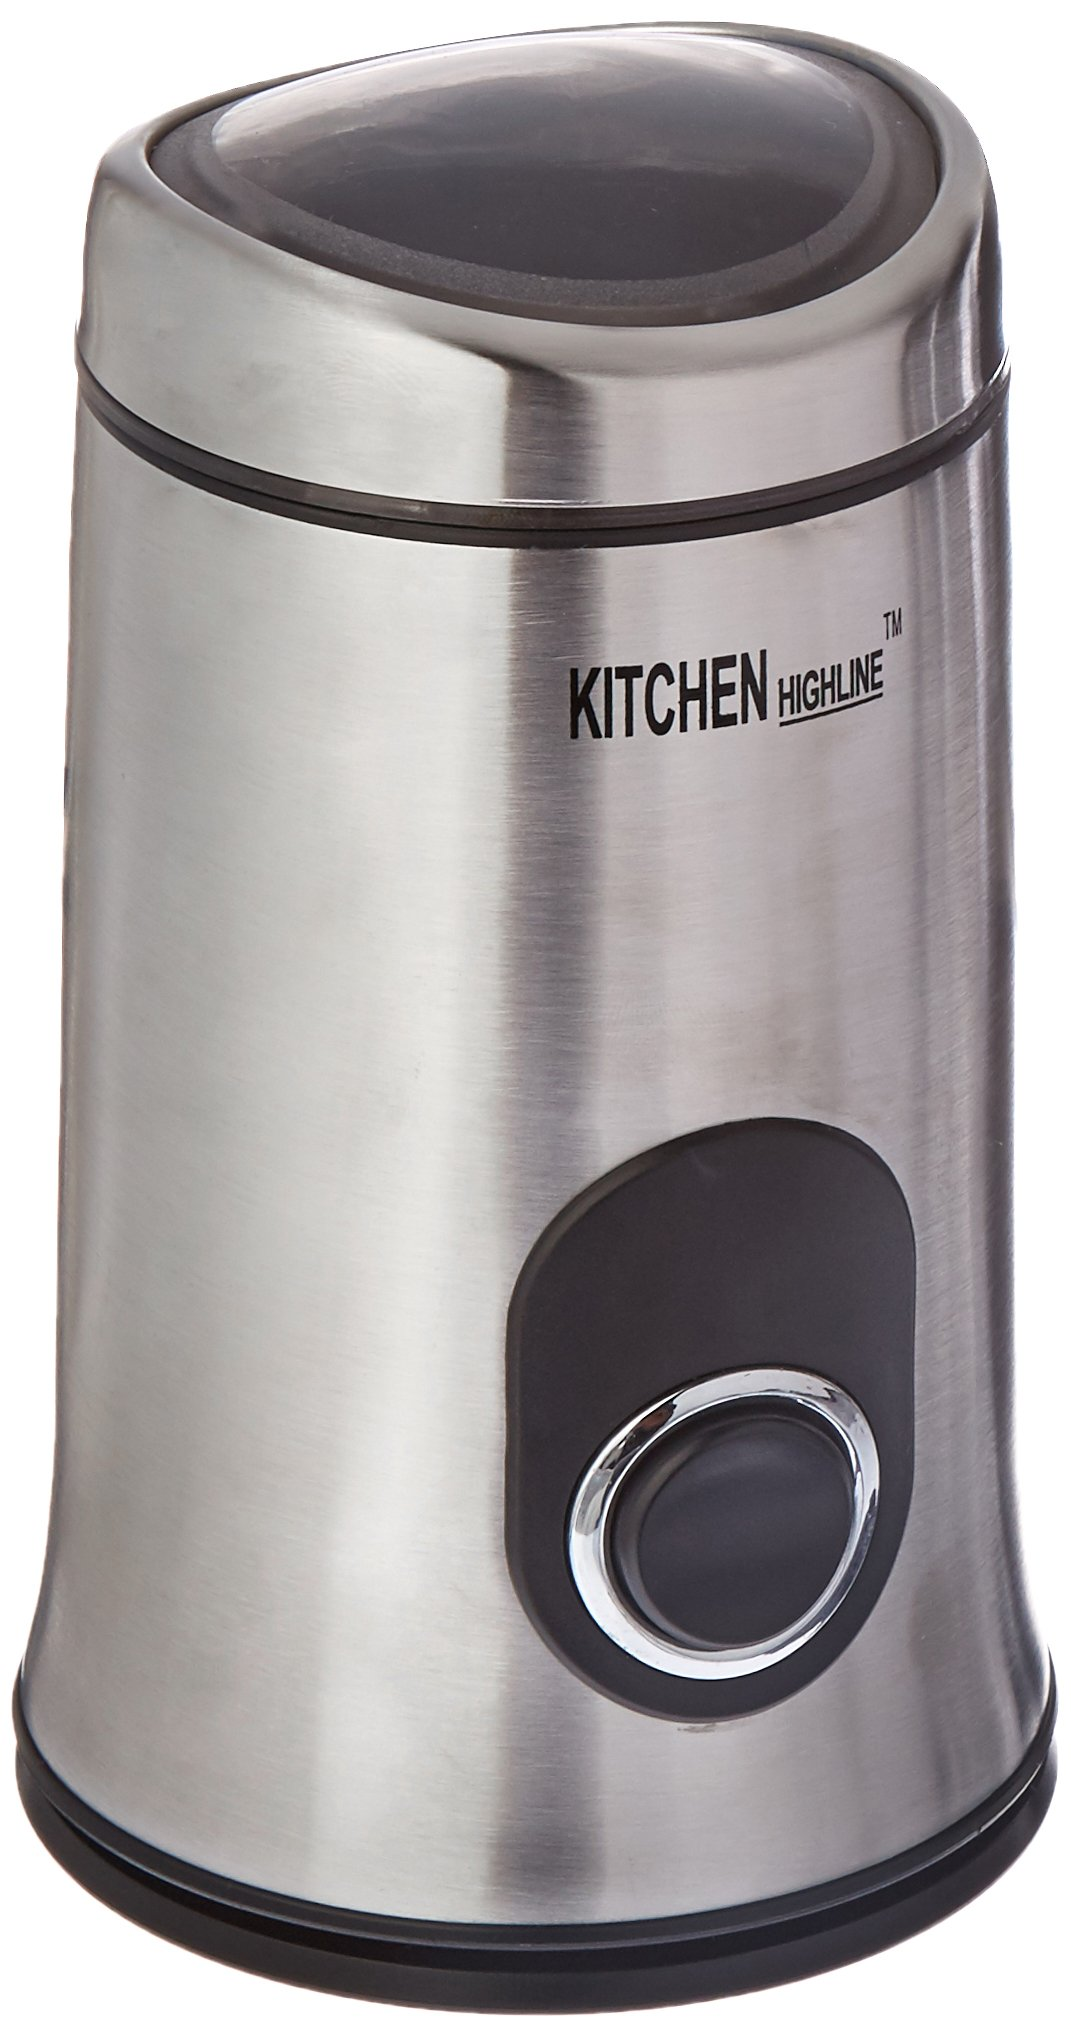 Kitchen Highline SP-7407 60gm Coffee Dry Grinder, 220-240 Volts (Not for use in USA and Canada),Silver